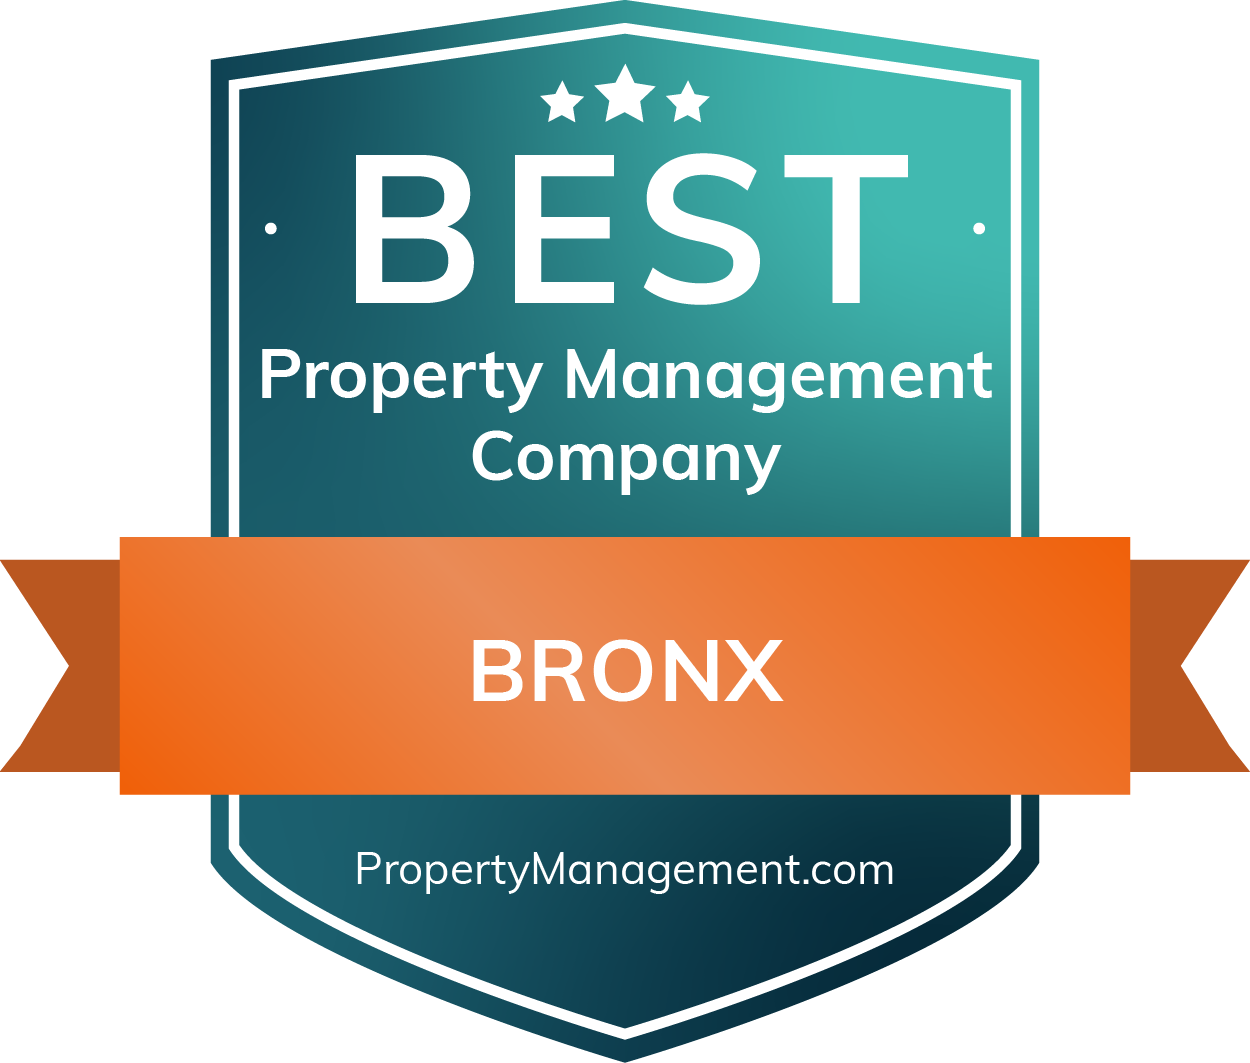 The Best Property Management in Bronx, NY